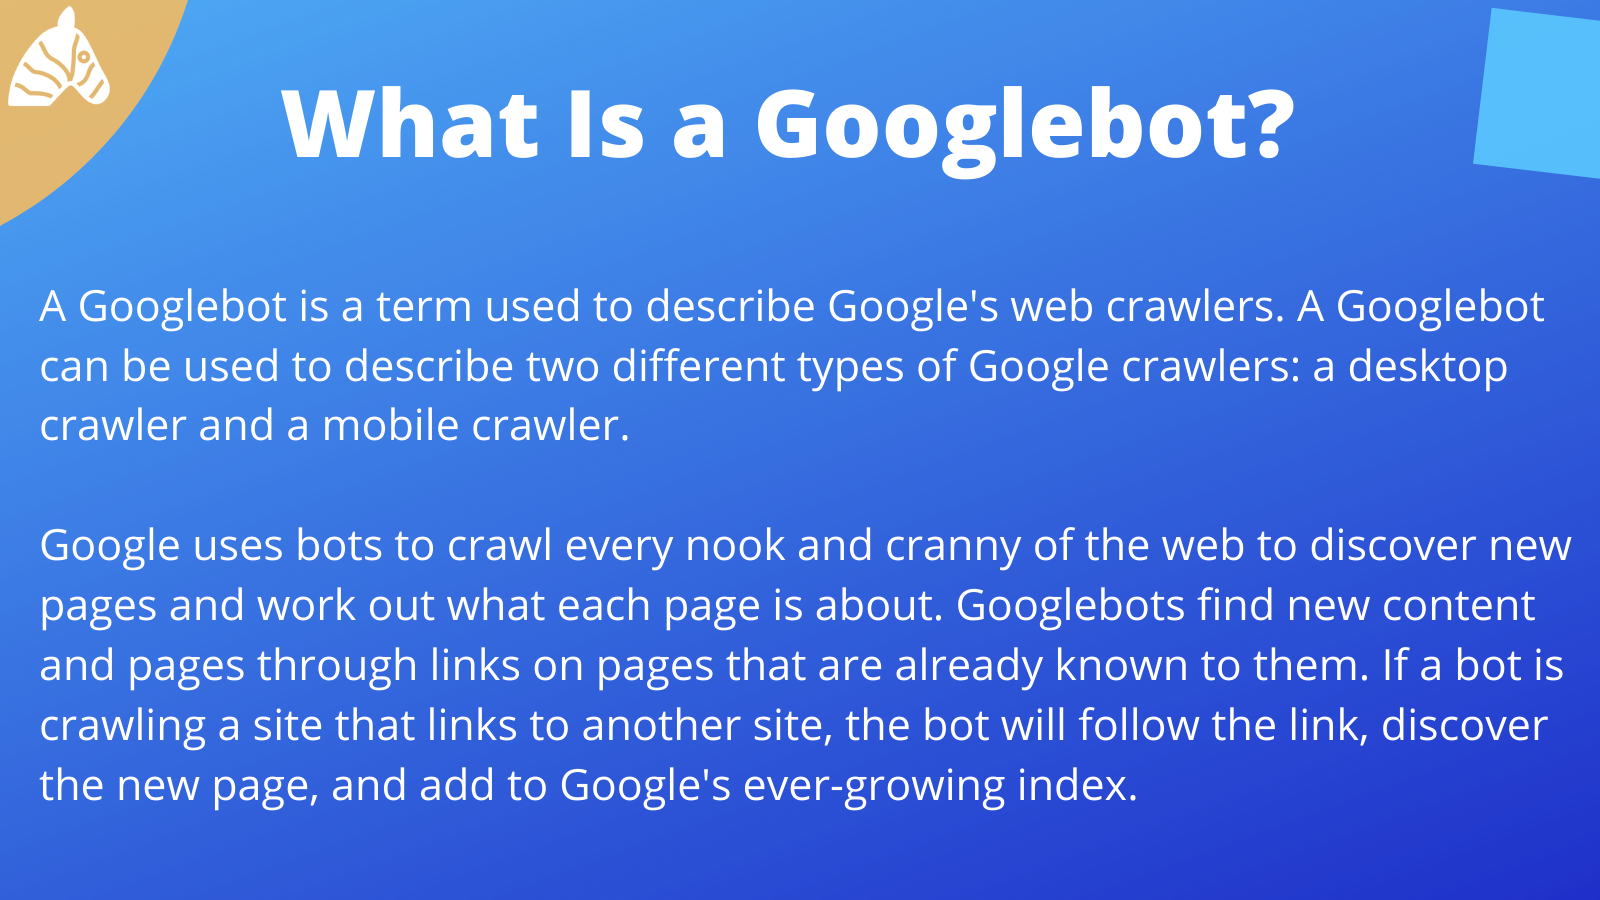 Information about Googlebot Web crawlers